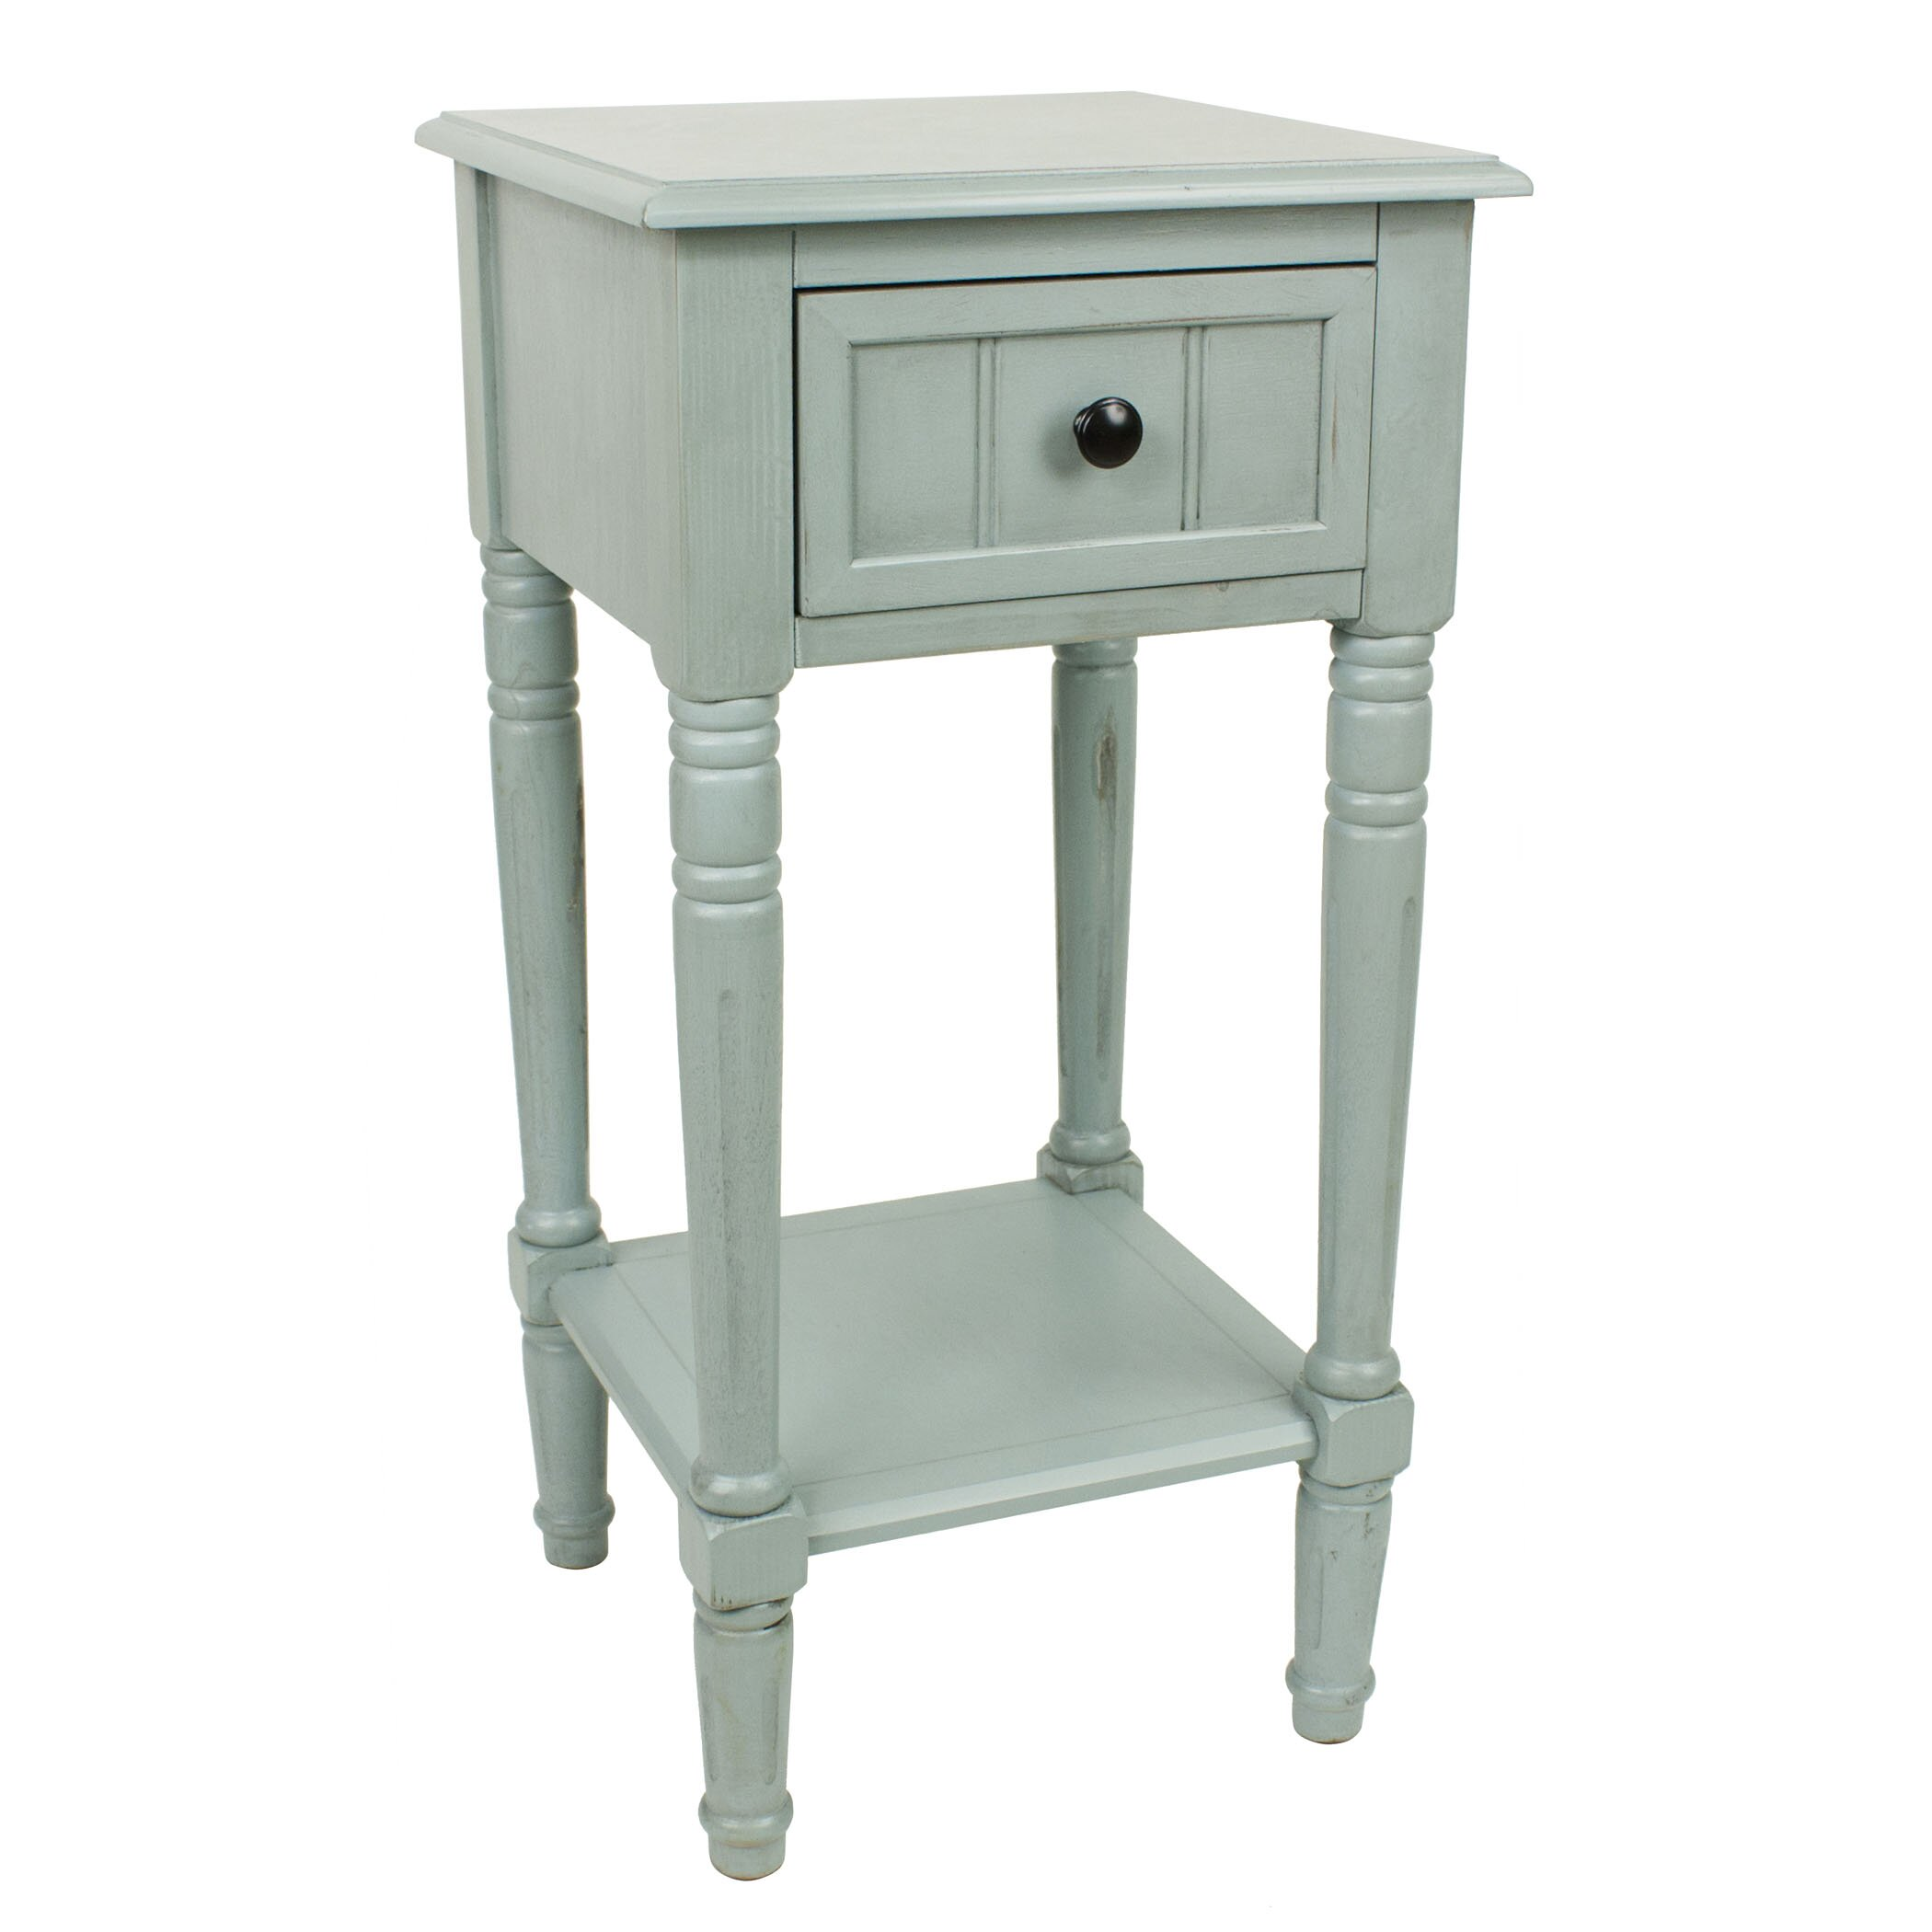 Andover mills everly 1 drawer end table reviews wayfair for 1 drawer table